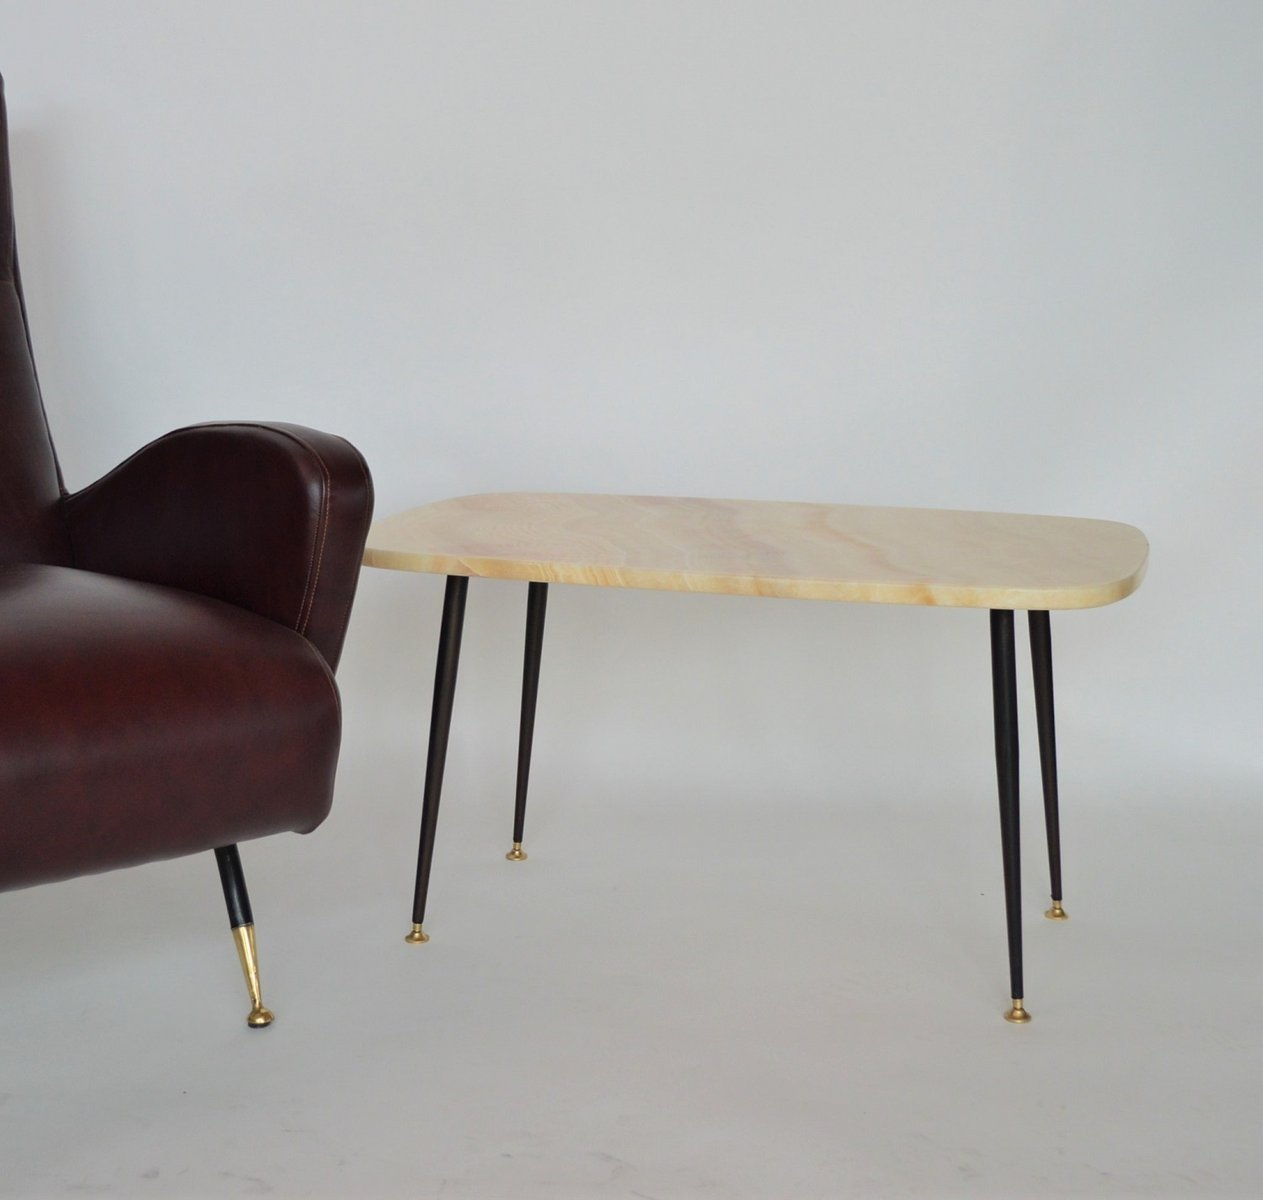 Marble Top Coffee And Side Tables: Pink Marble Top Coffee Table Or Side Table, 1950s For Sale